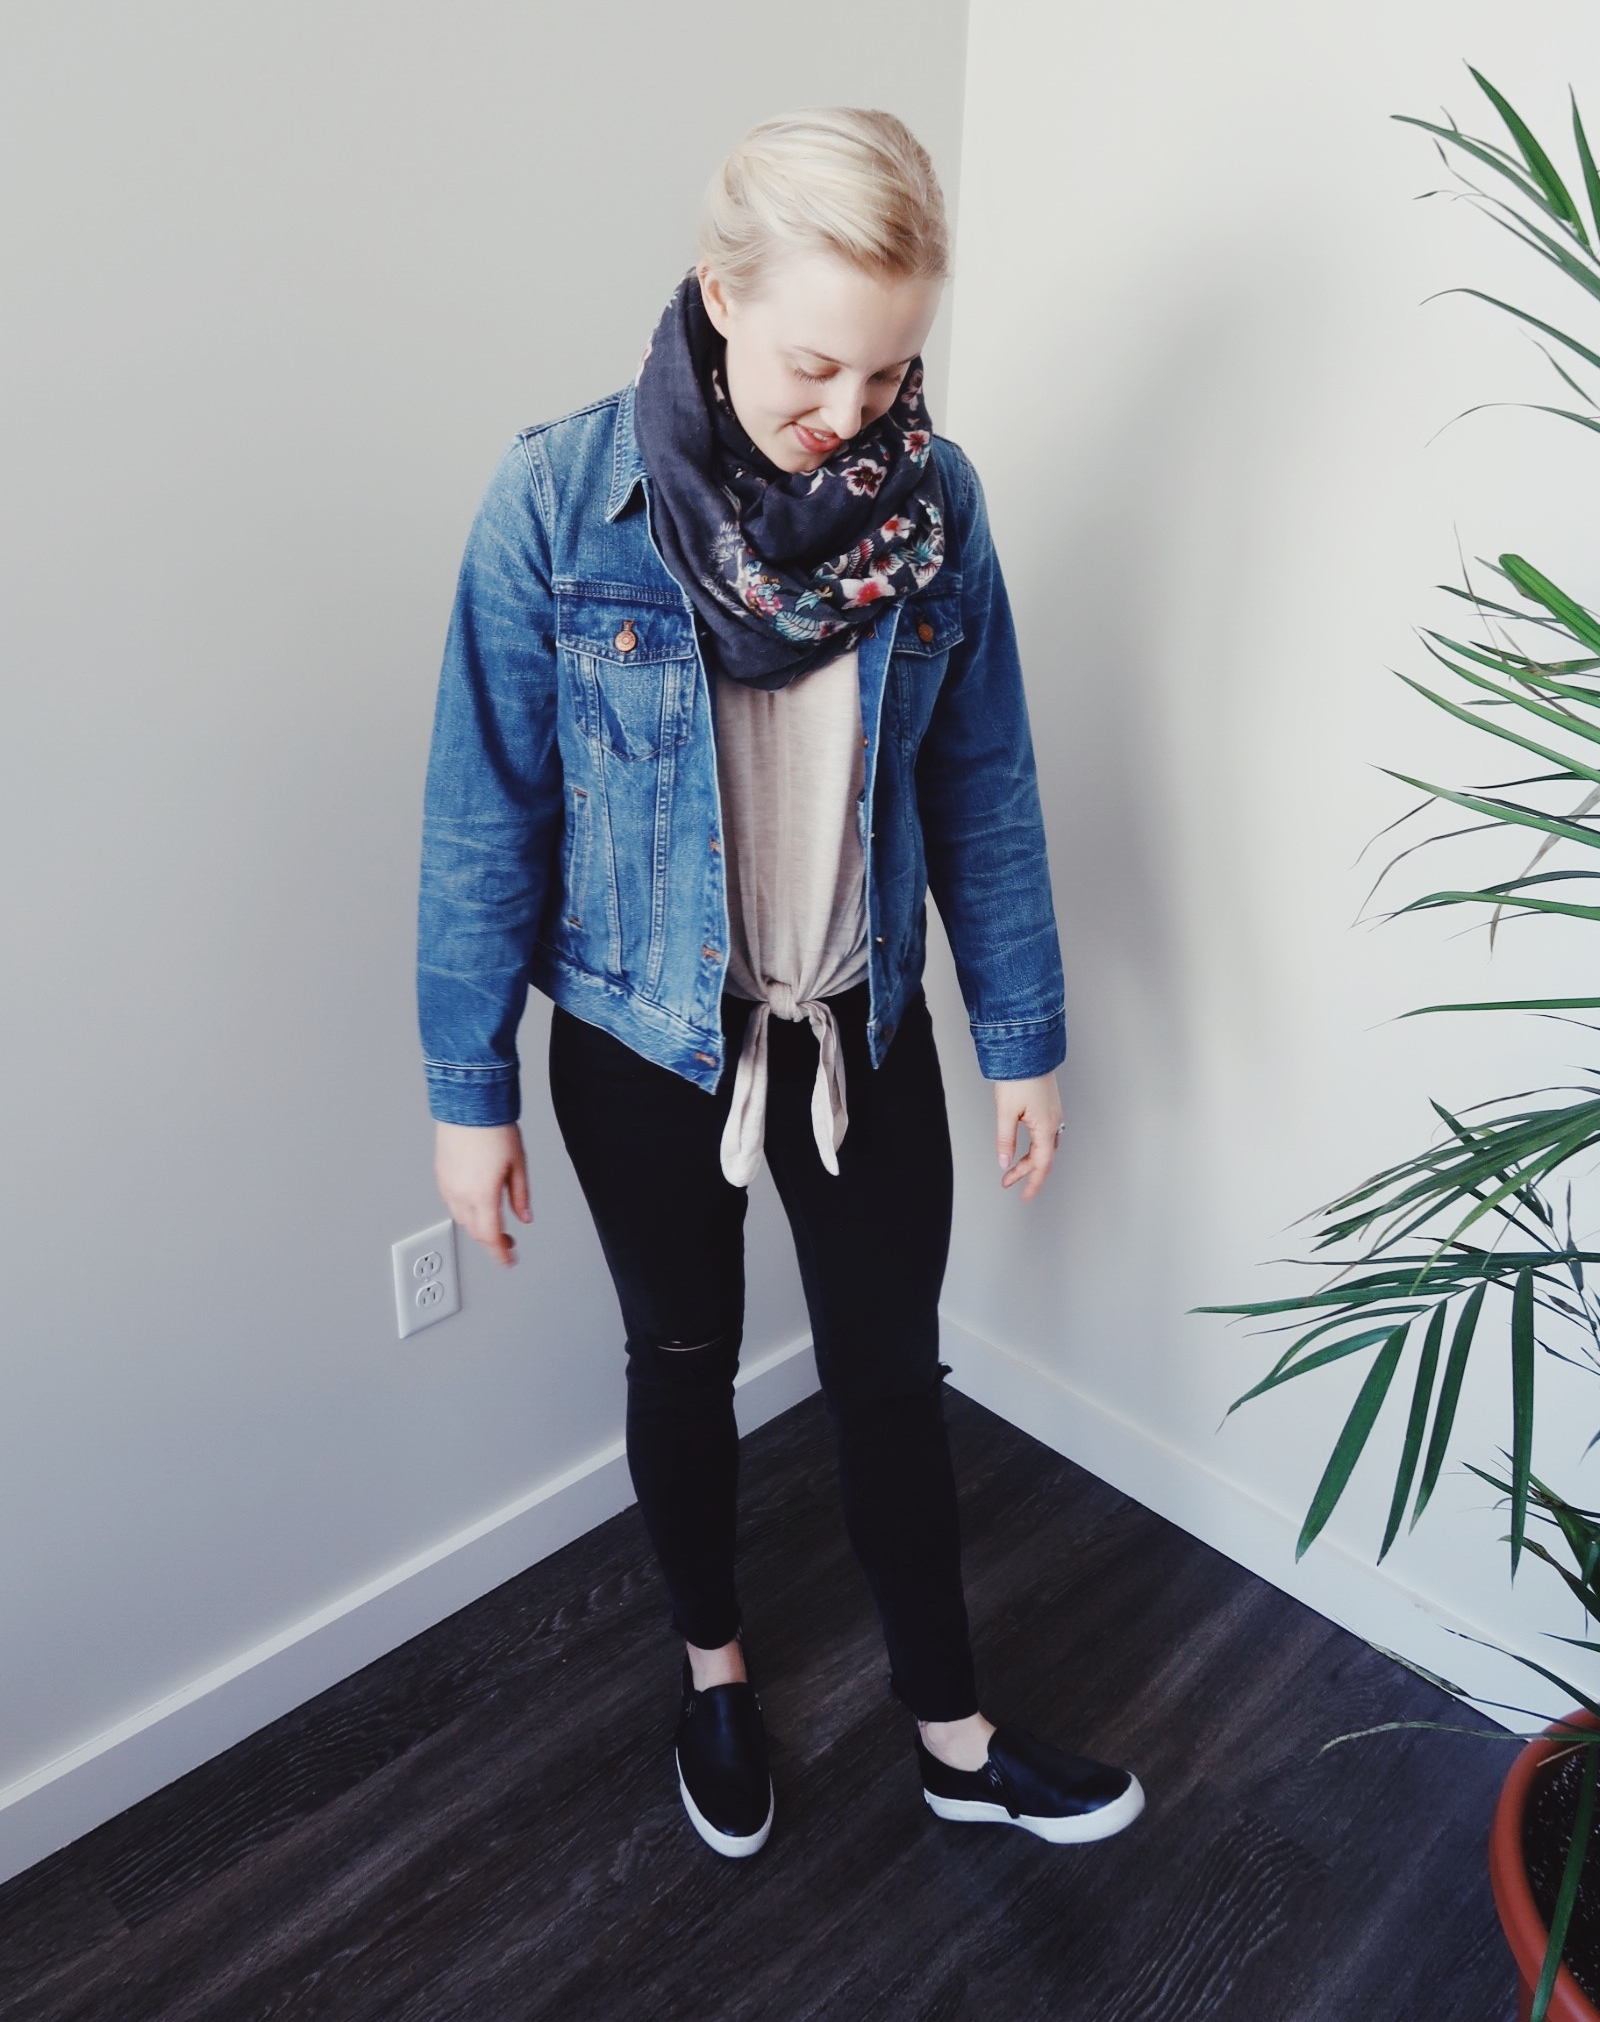 Jacket:   Madewell ;  Tie-front sweater:   Madewell ;  Jeans:   Madewell;   Scarf:  H&M (old);  Slides:  Banana Republic (old)